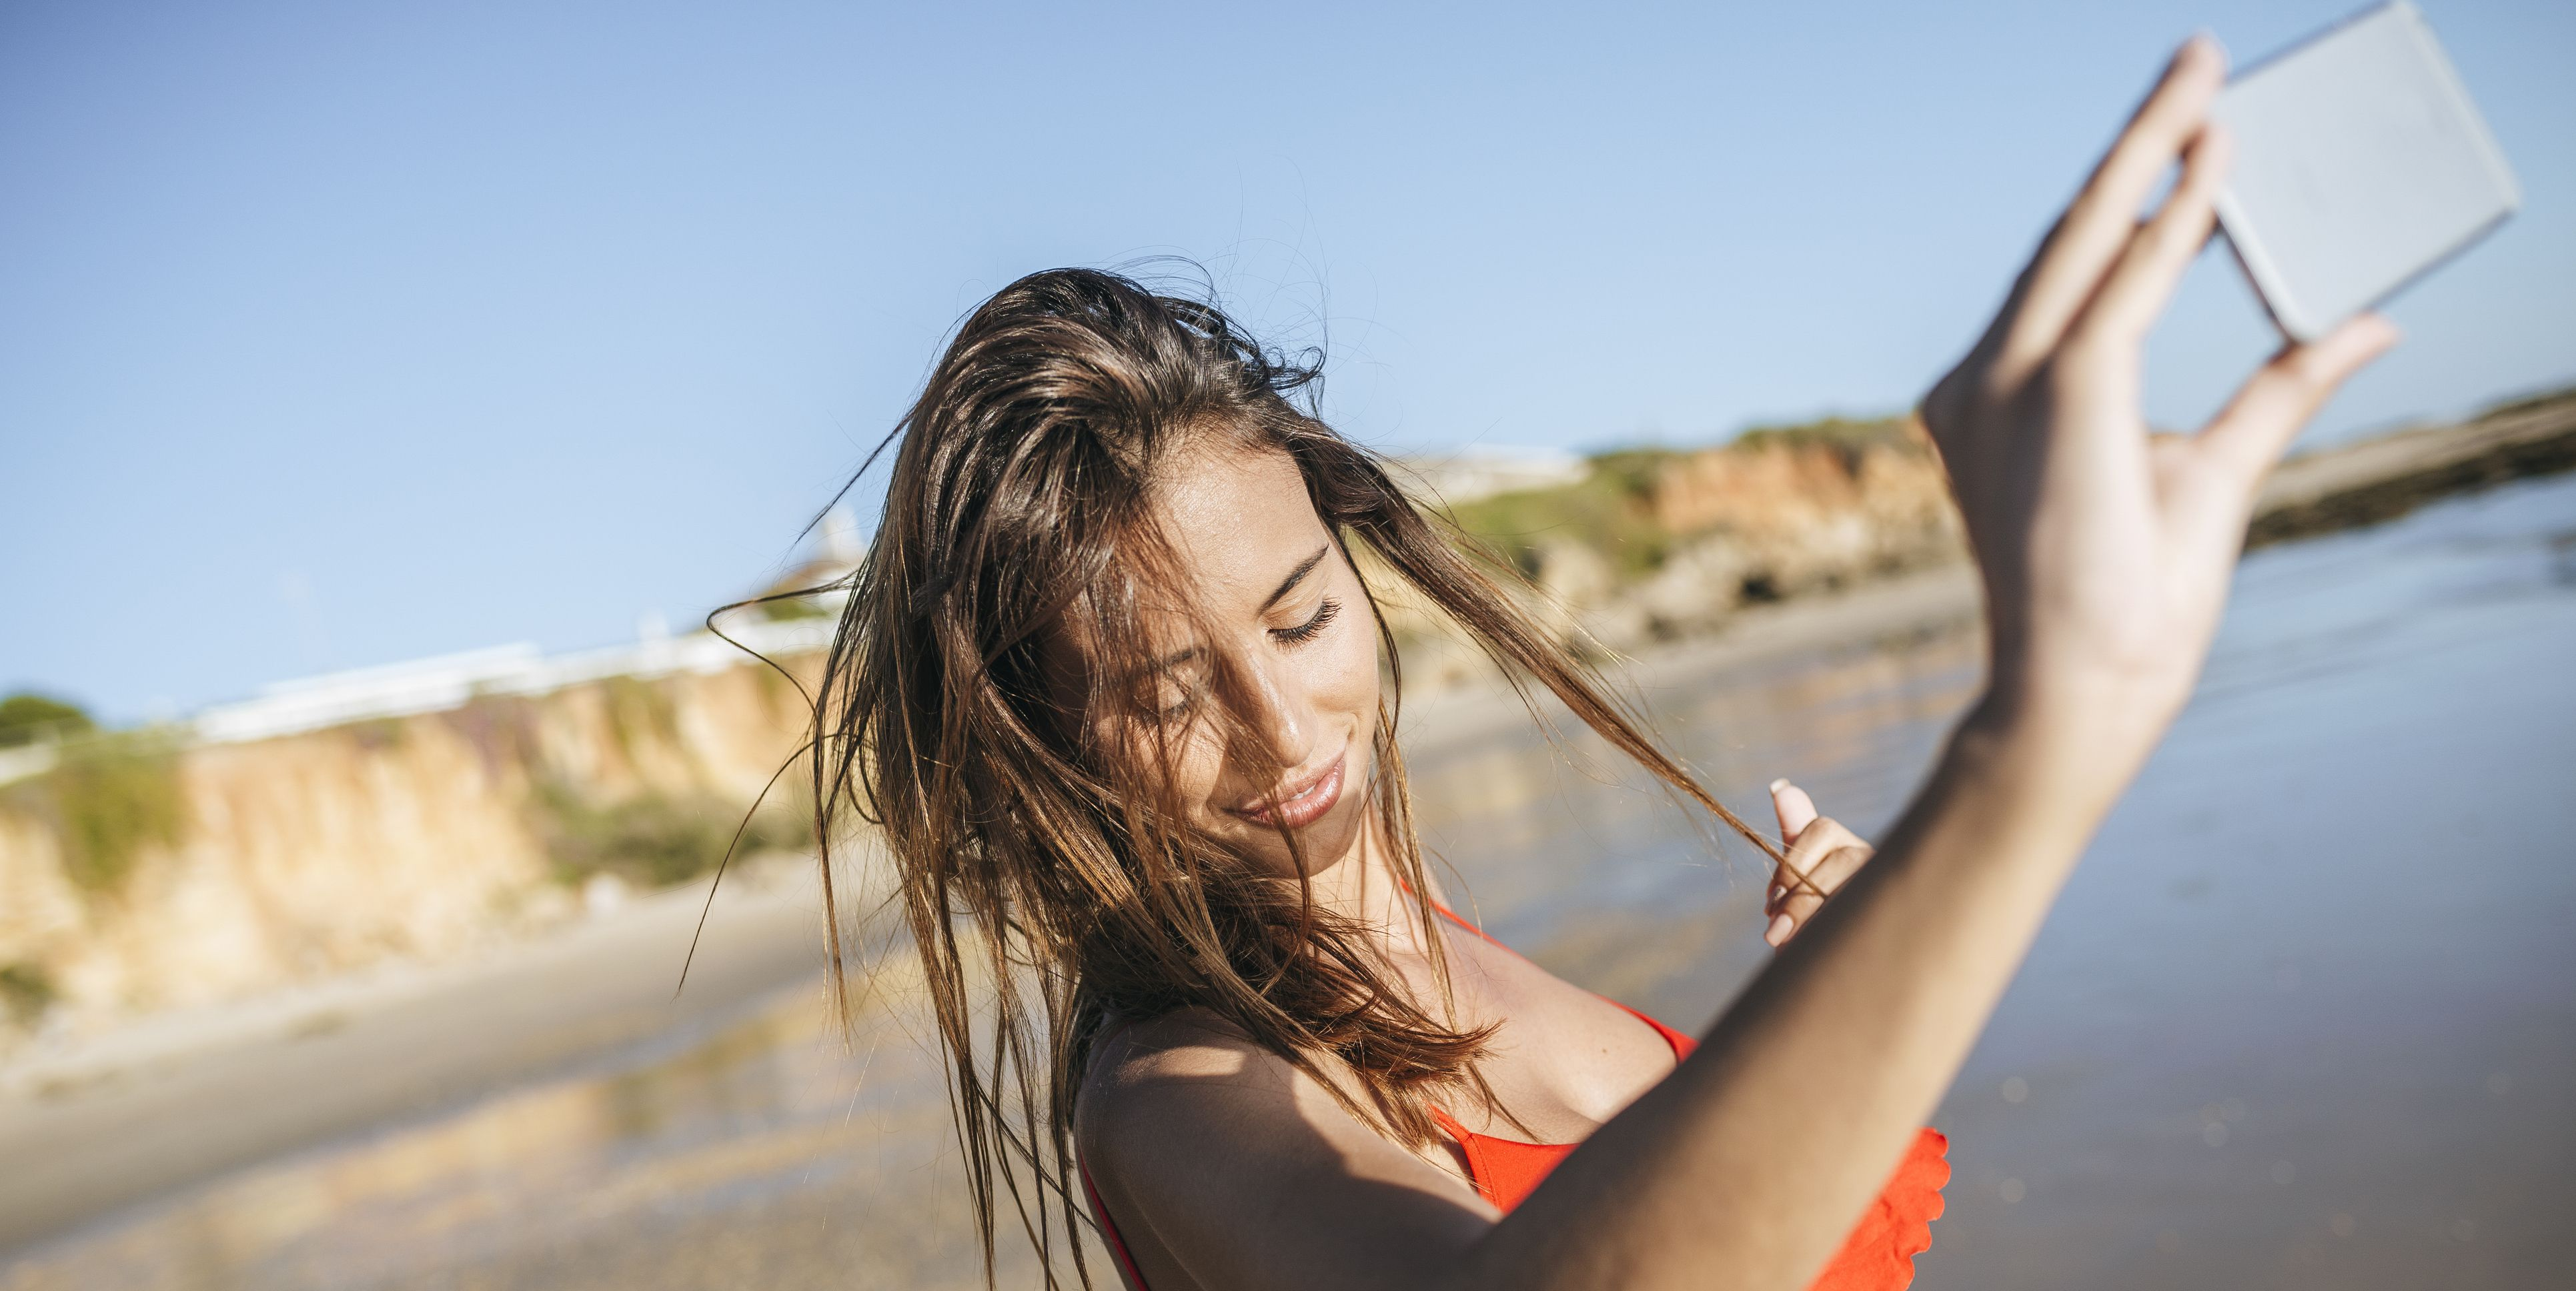 Young woman taking selfie on the beach with smartphone